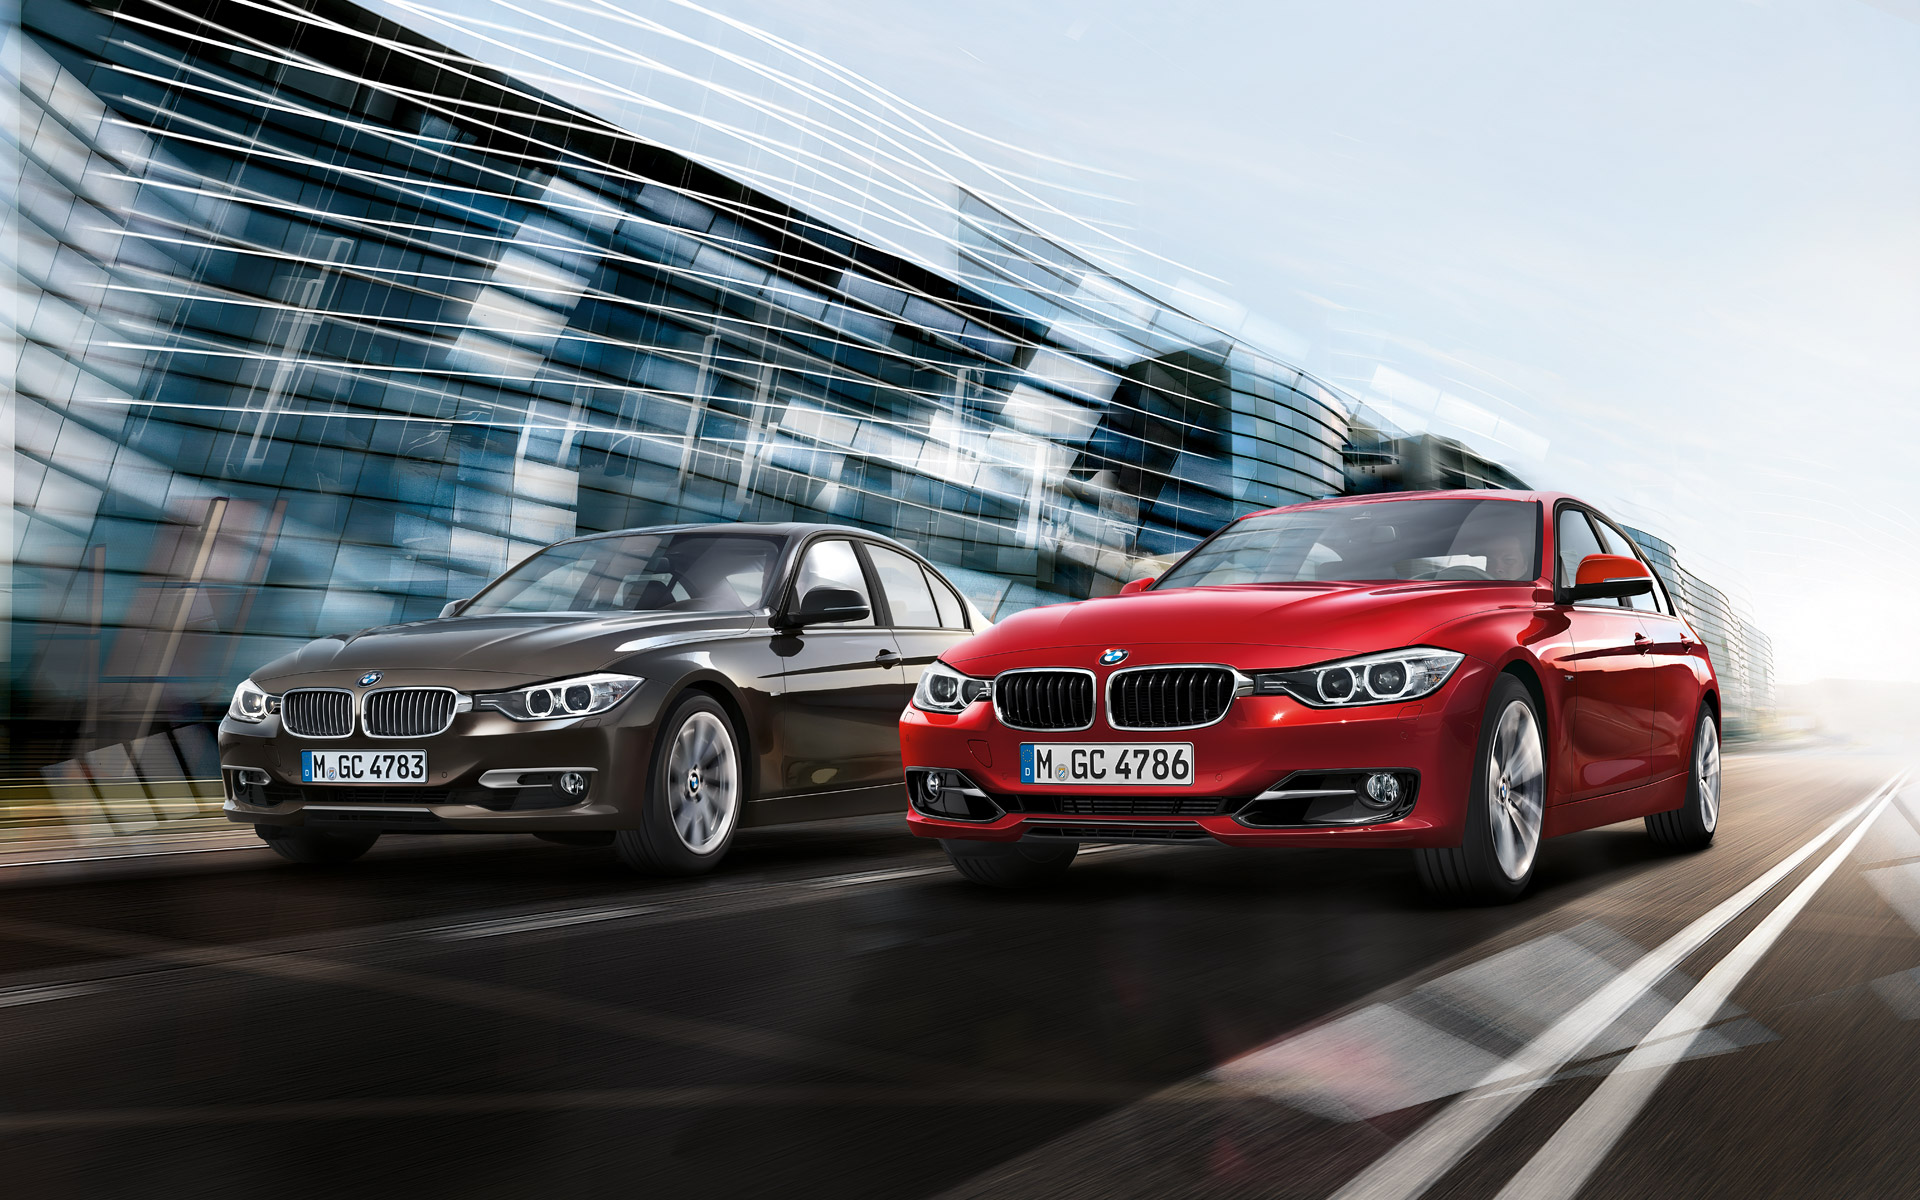 BMW_3series_wallpaper_21_1920